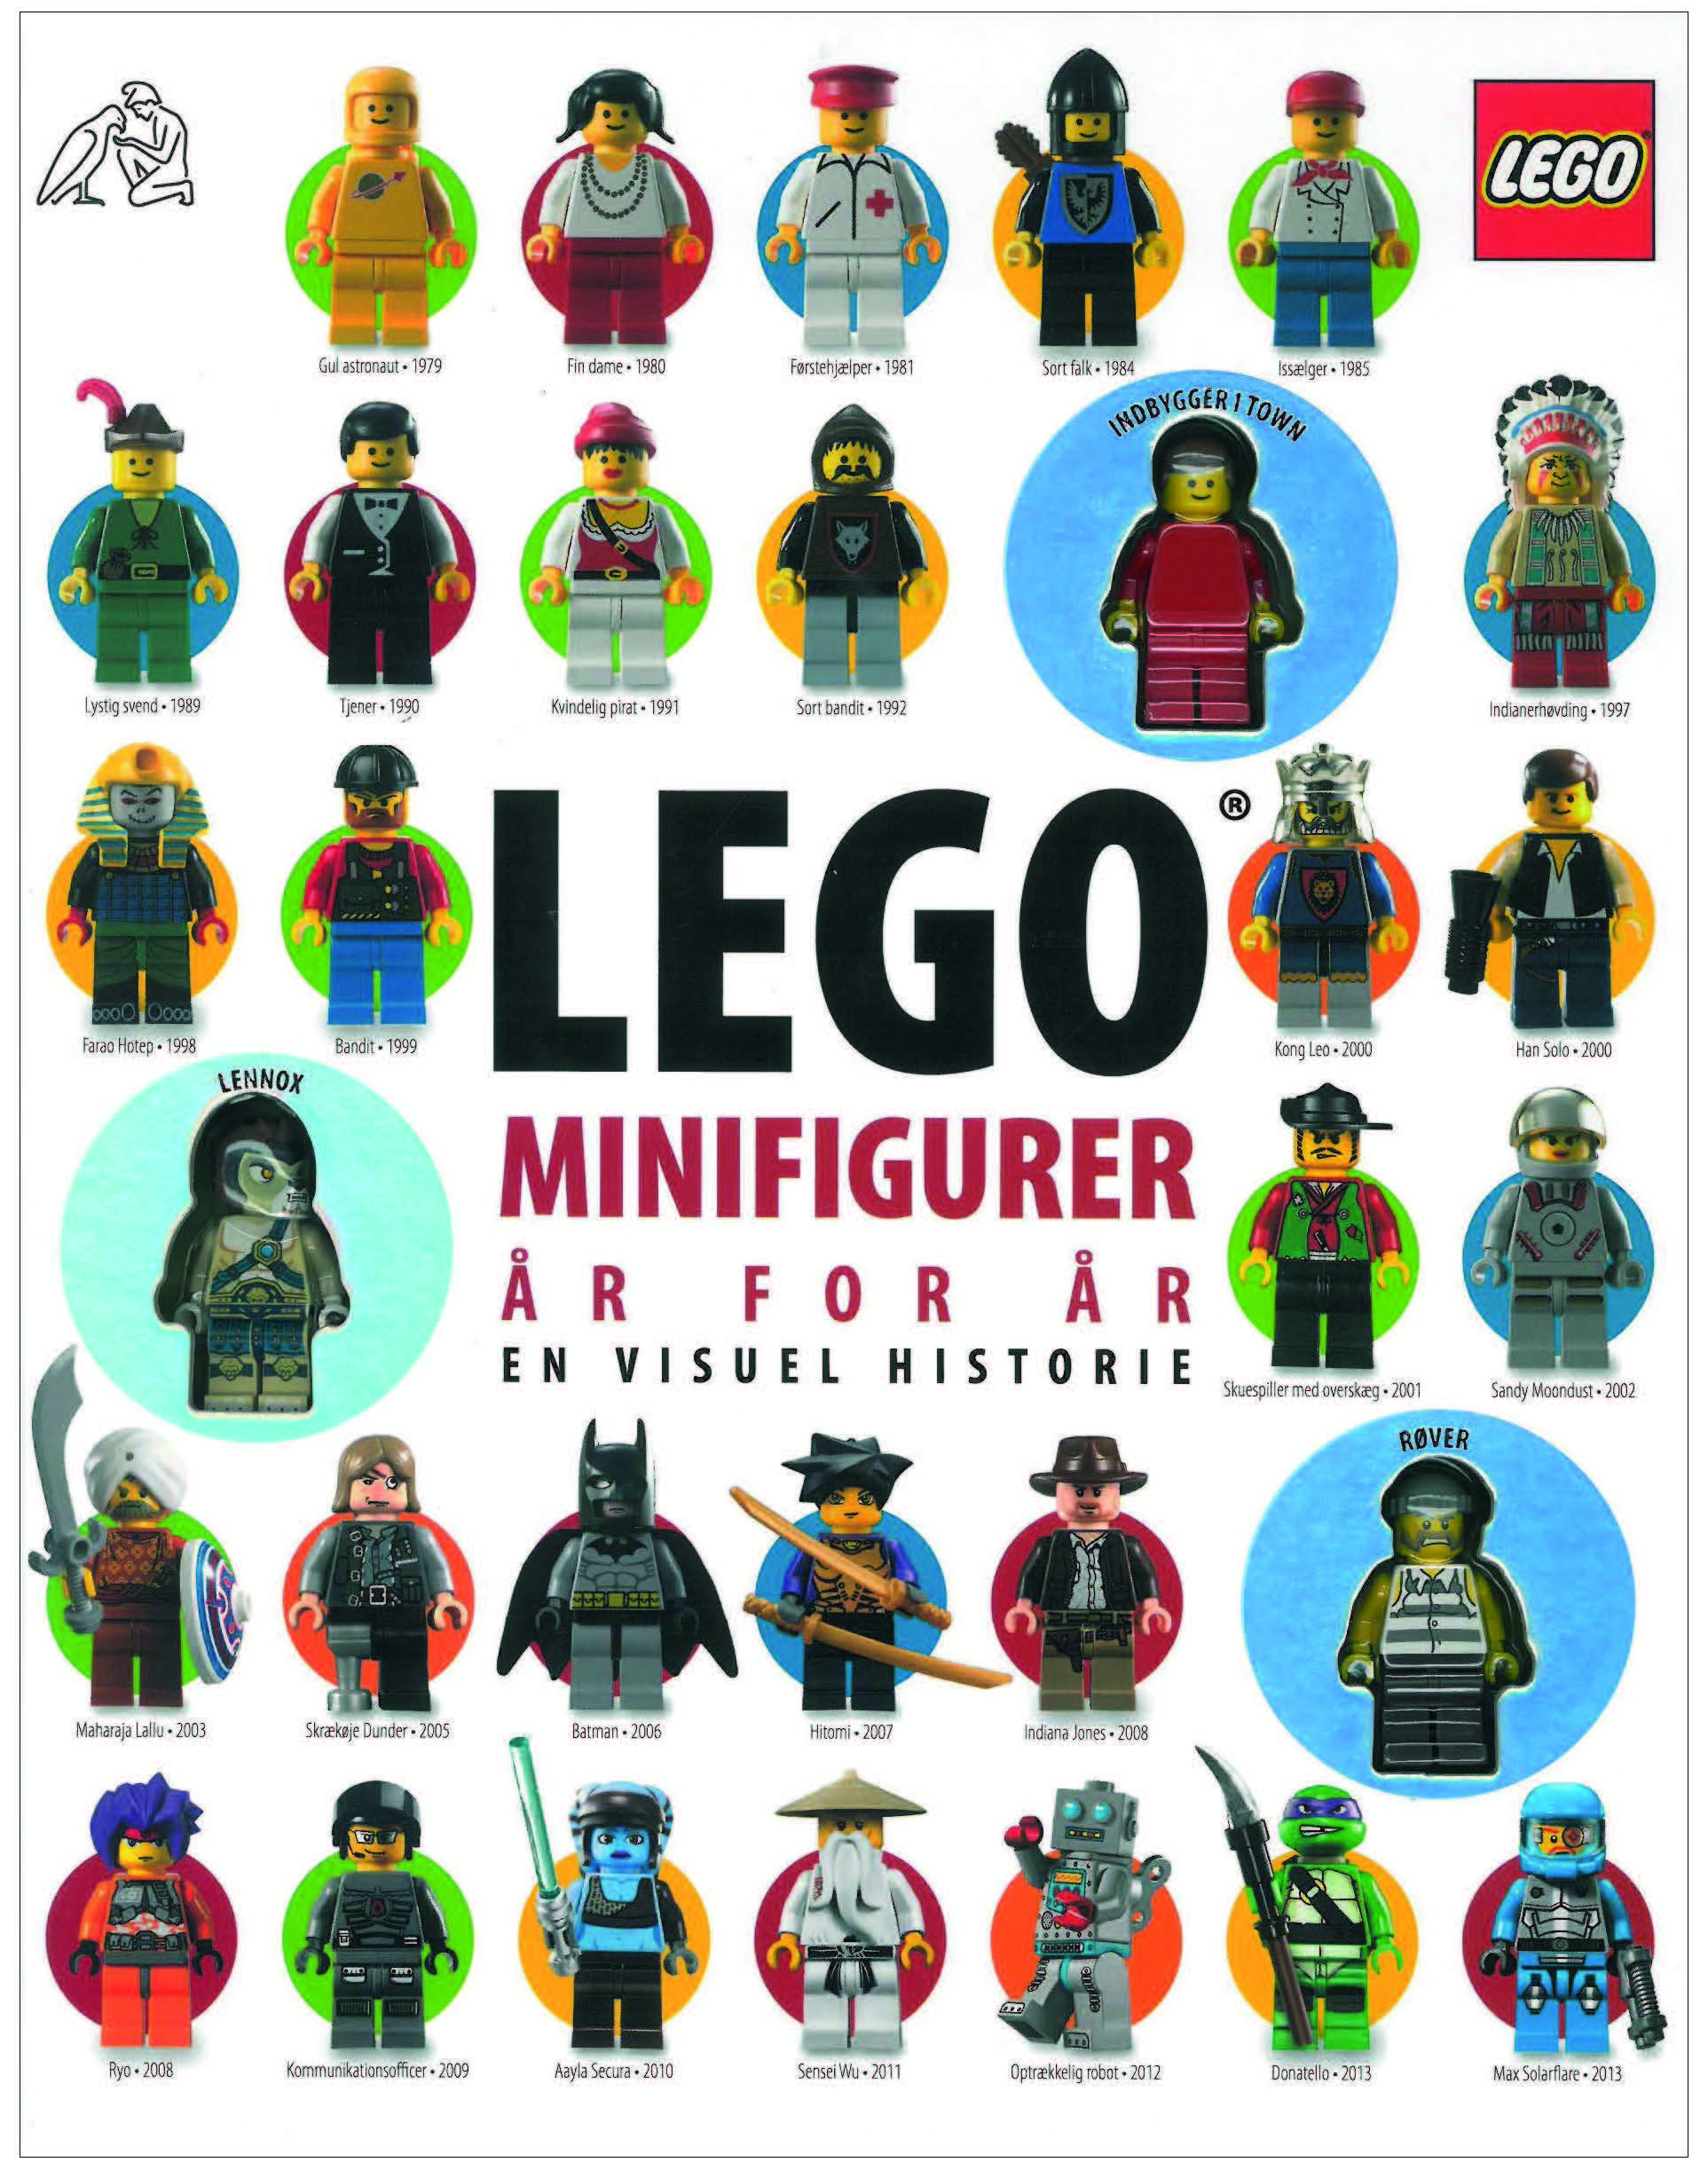 Lipkowitz LEGO minifigurer år for år